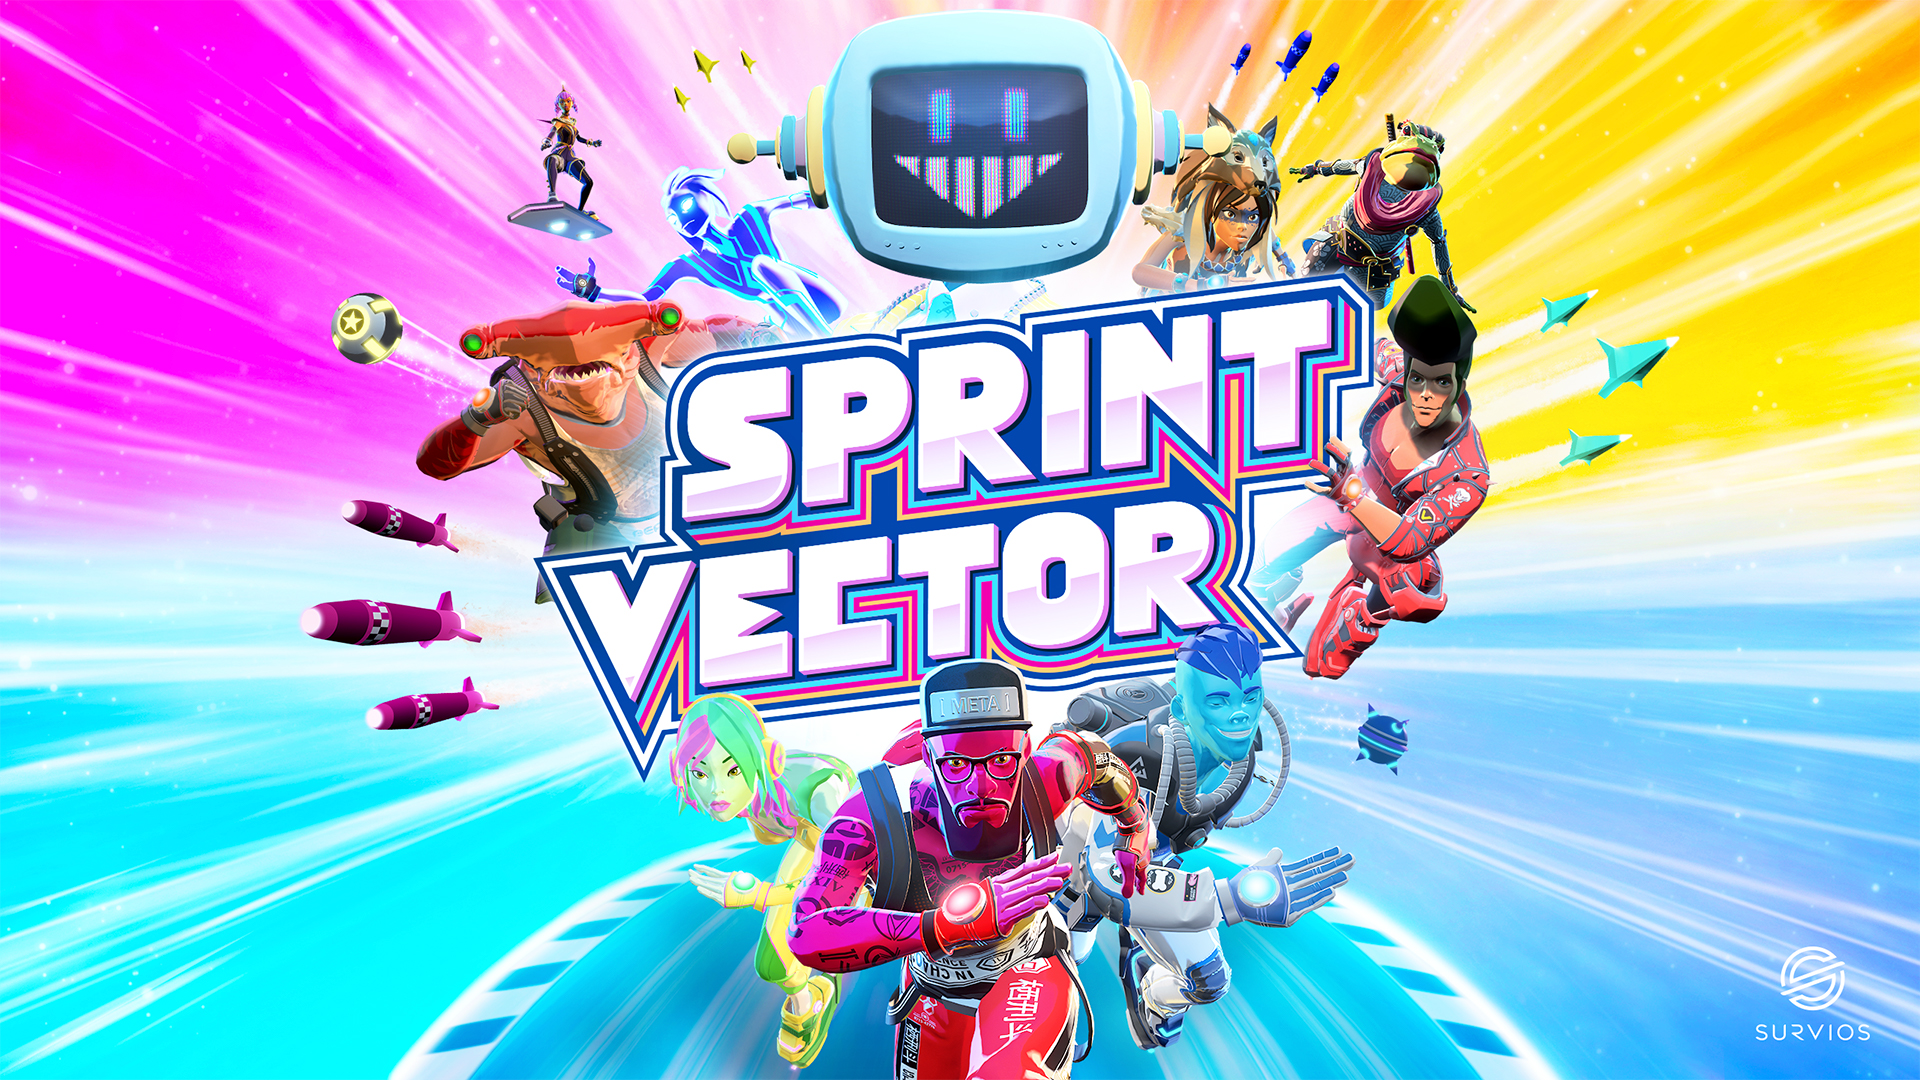 Sprint Vector cover art featuring all of the characters I designed for the game.